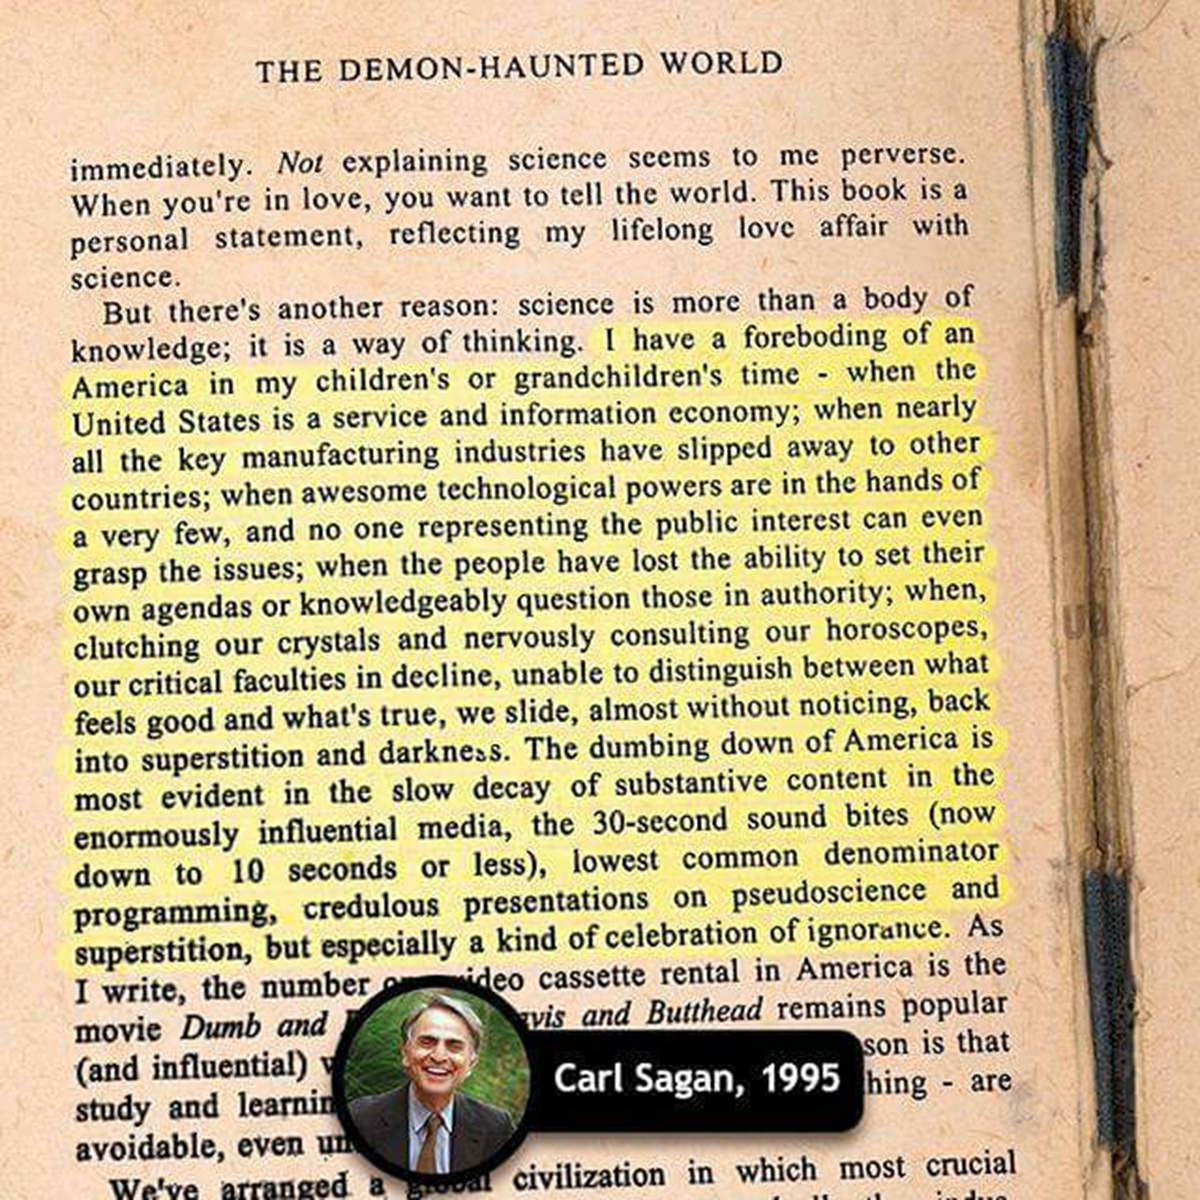 Carl Sagan Quote from The Demon-Haunted World